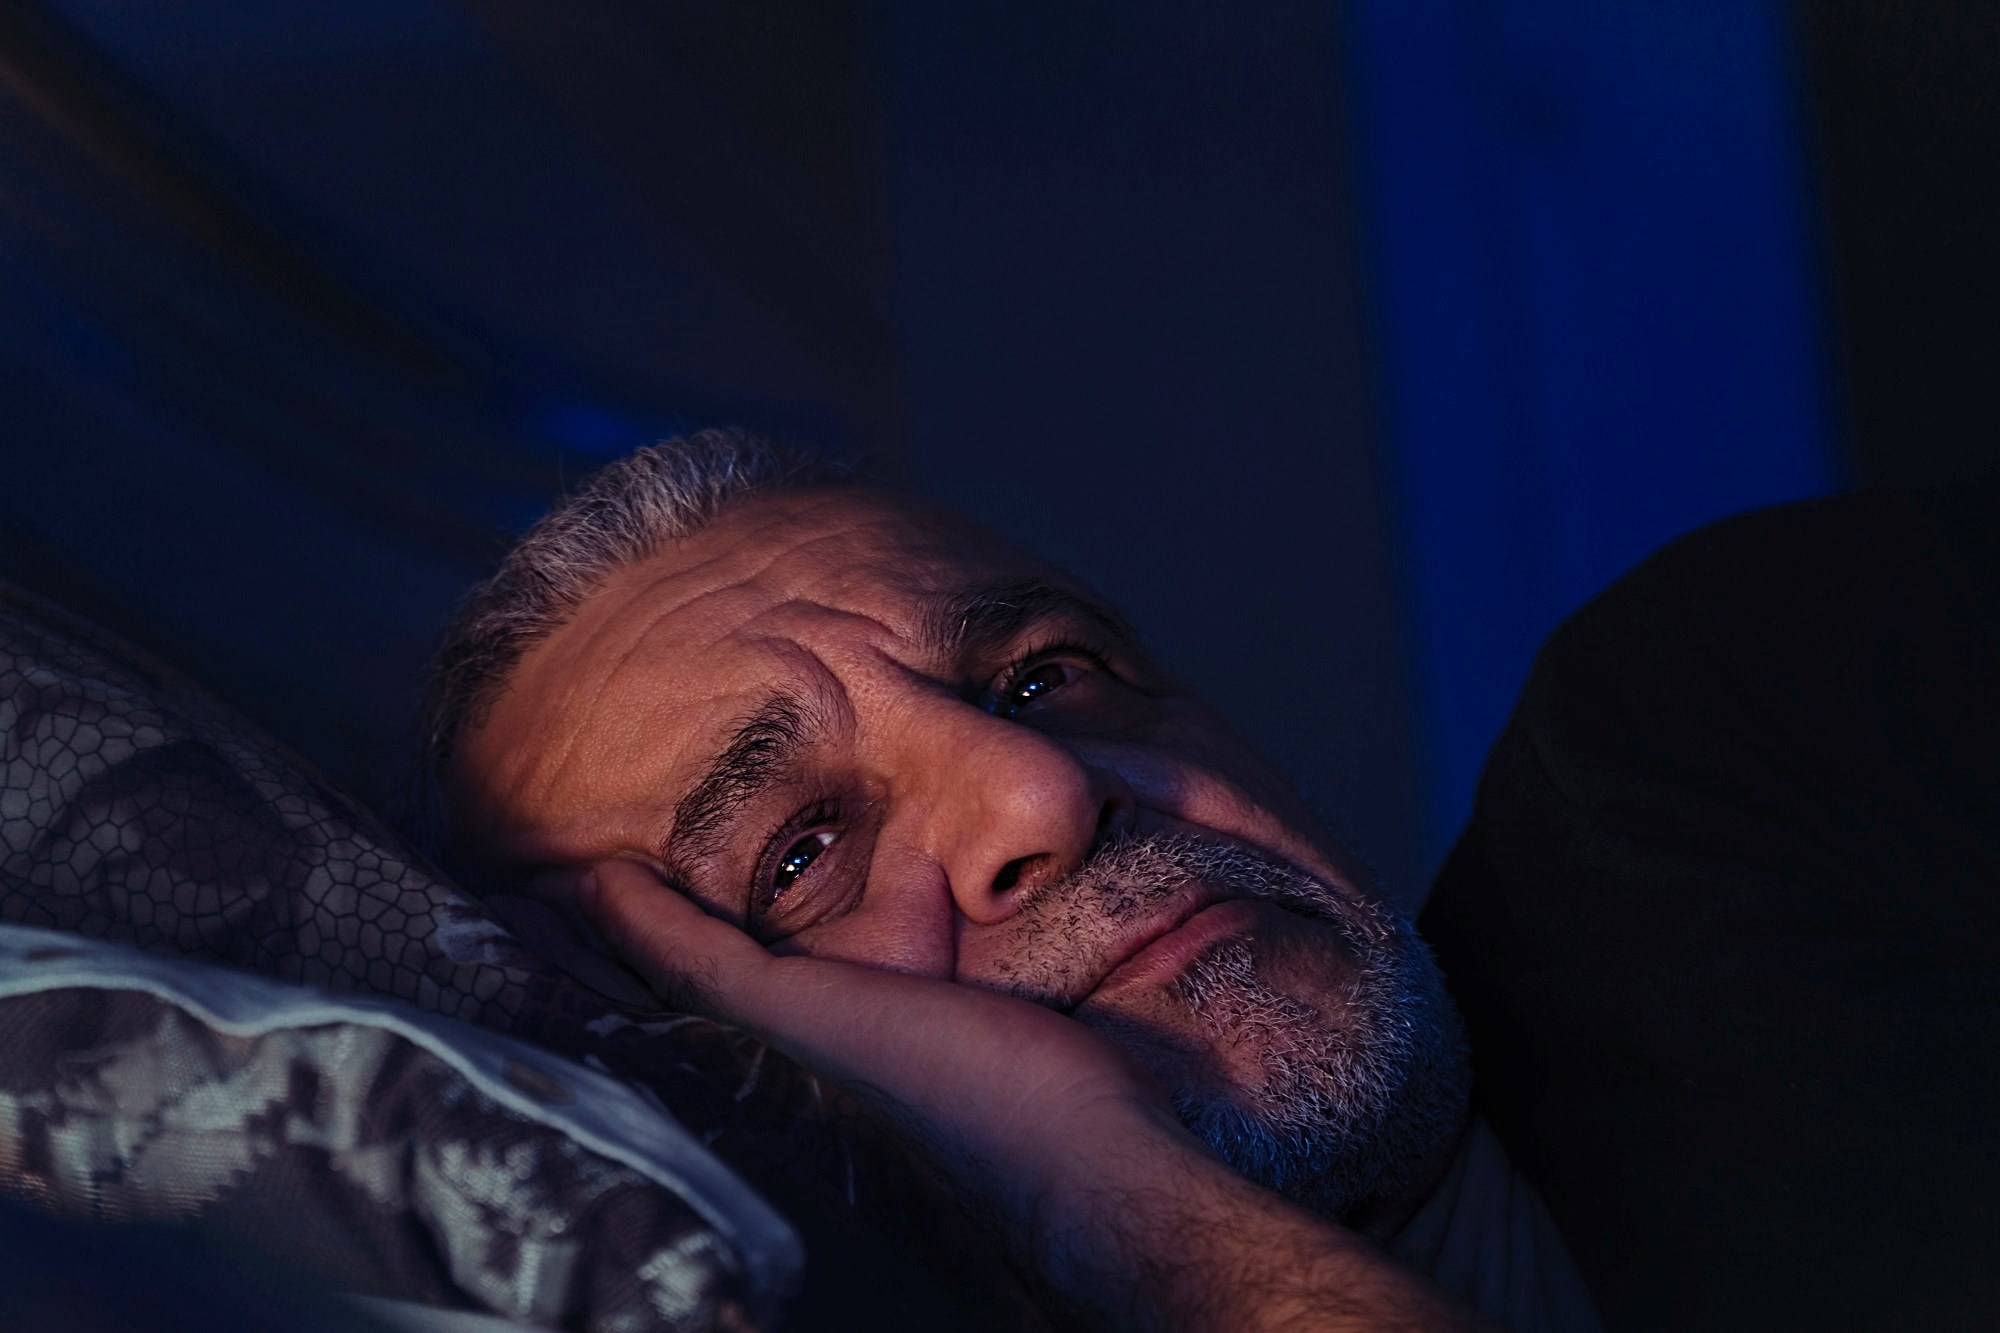 Sleep alterations often precede cognitive and motor symptoms in PD and appear during the prodromal phase of the disease.